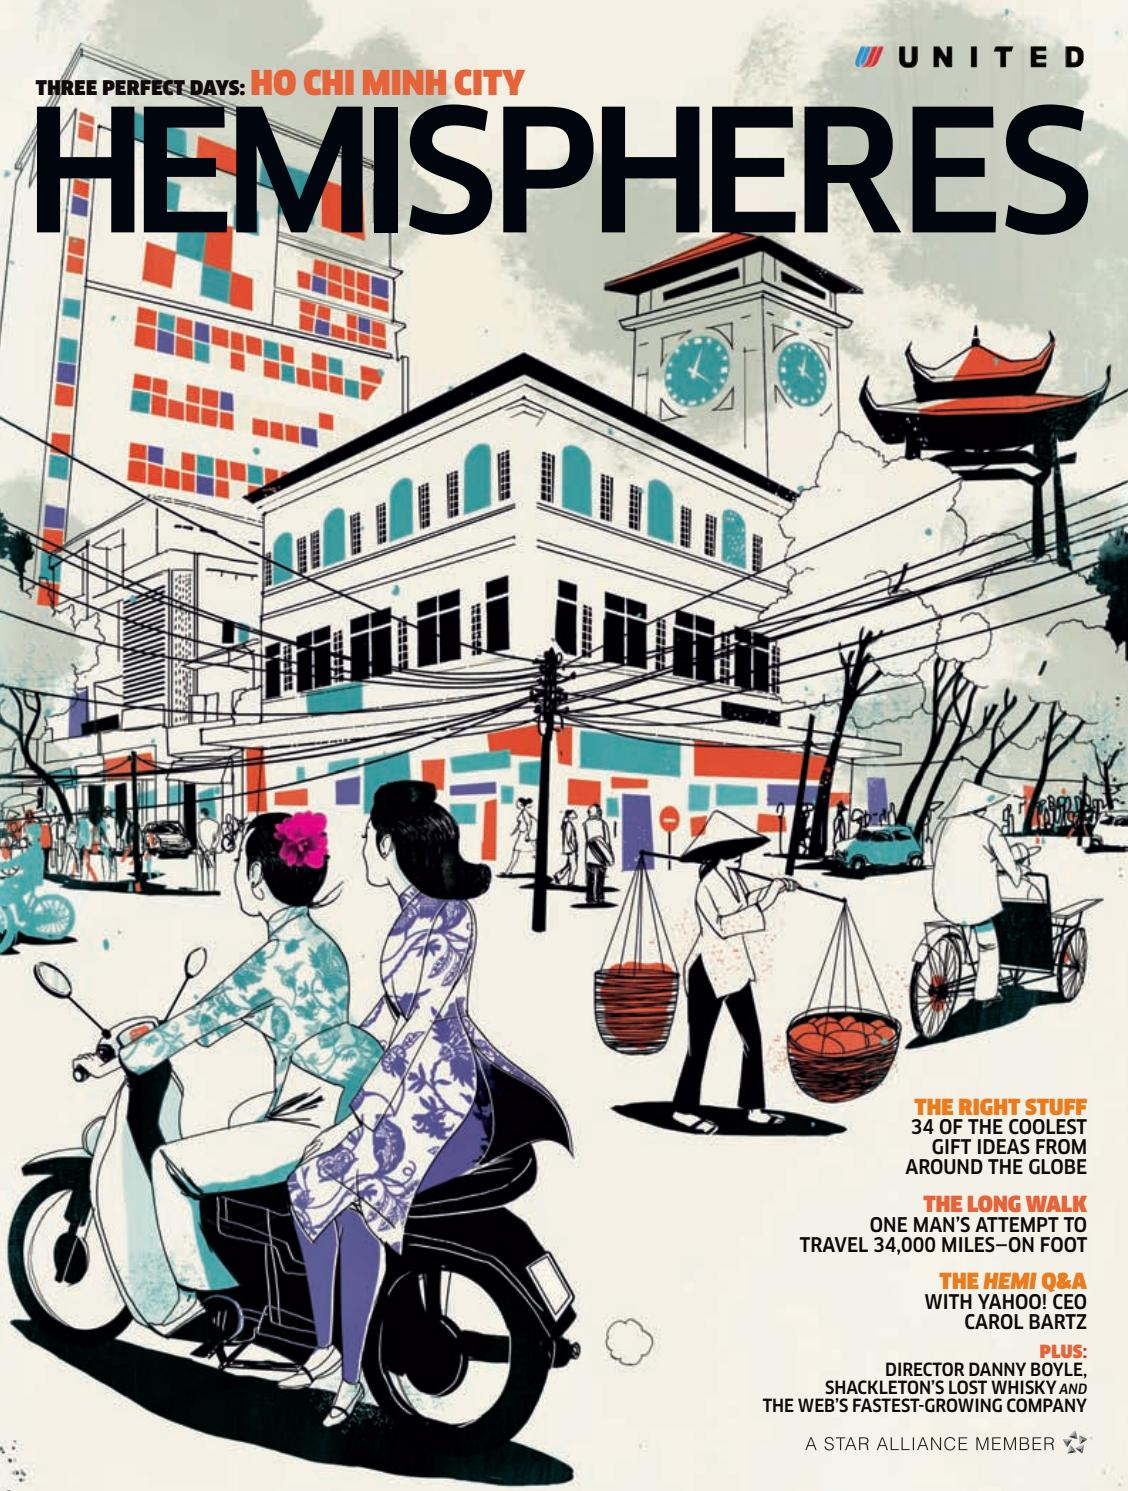 United Airlines Hemispheres Magazine November 2010 By Ahmed